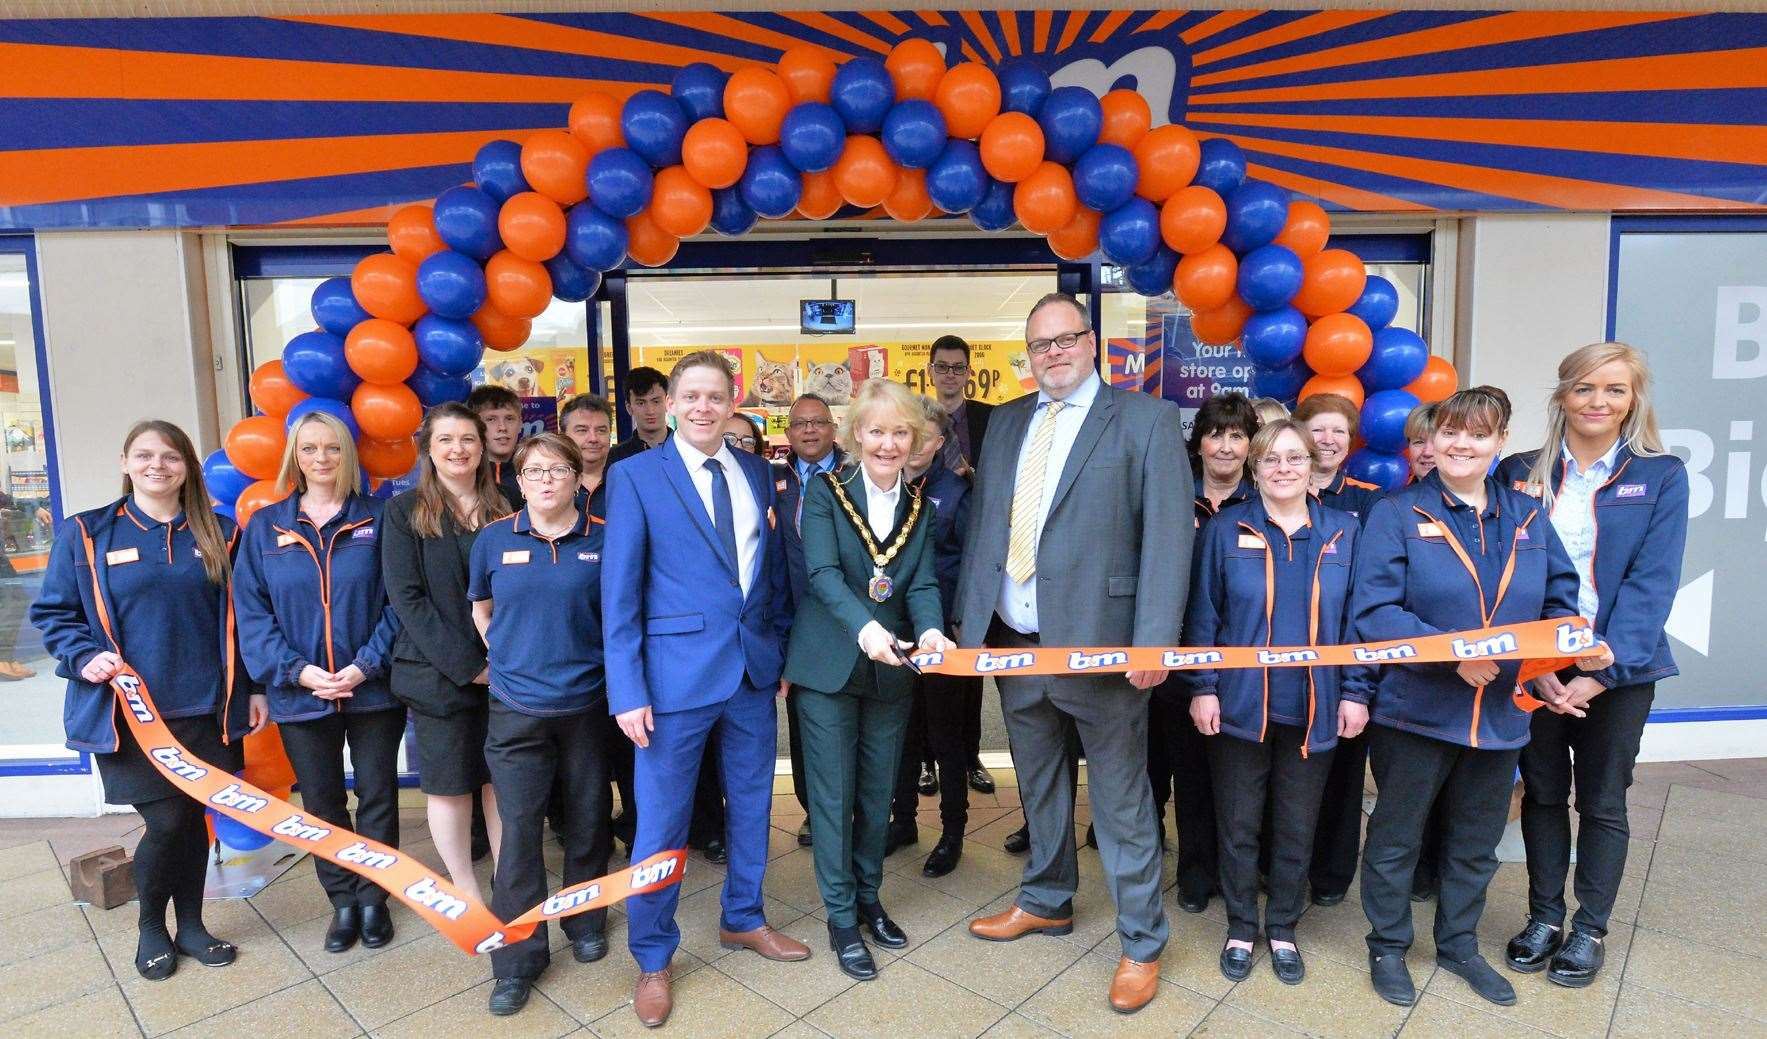 Town mayor Rachel Hood cuts the ribbon to officially open Newmarket's new branch of discount retailer B&M